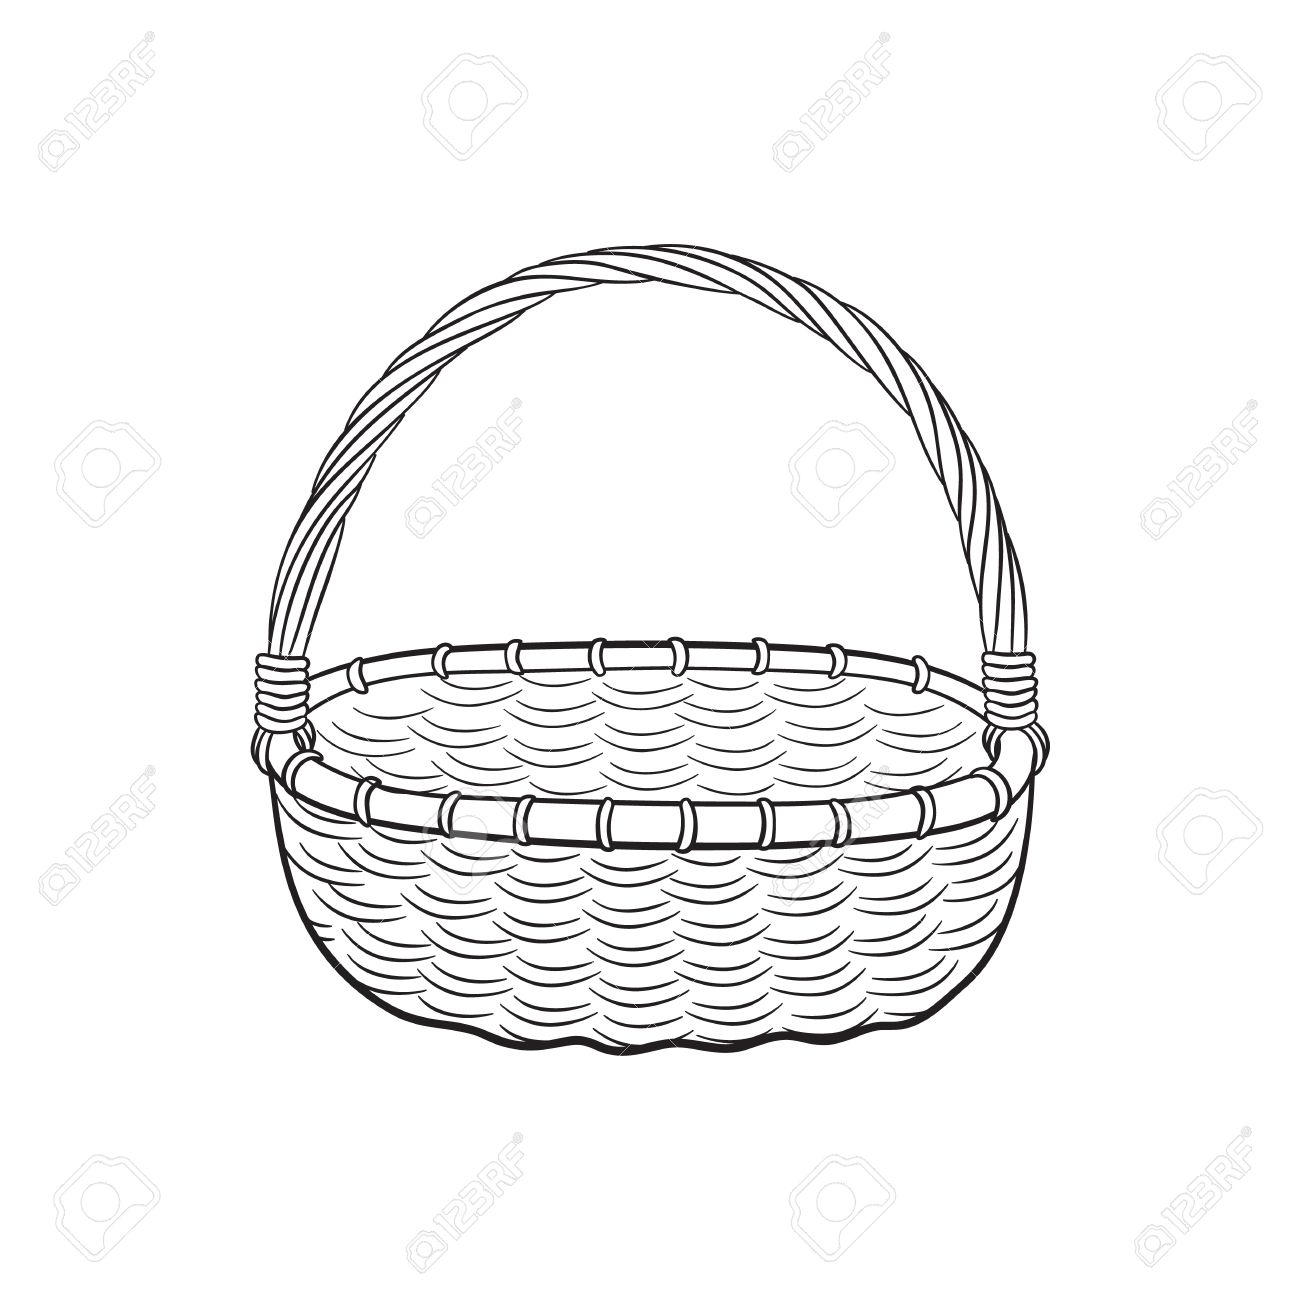 1300x1300 Hand Drawn Picnic Basket Isolated On White Background. Sketch